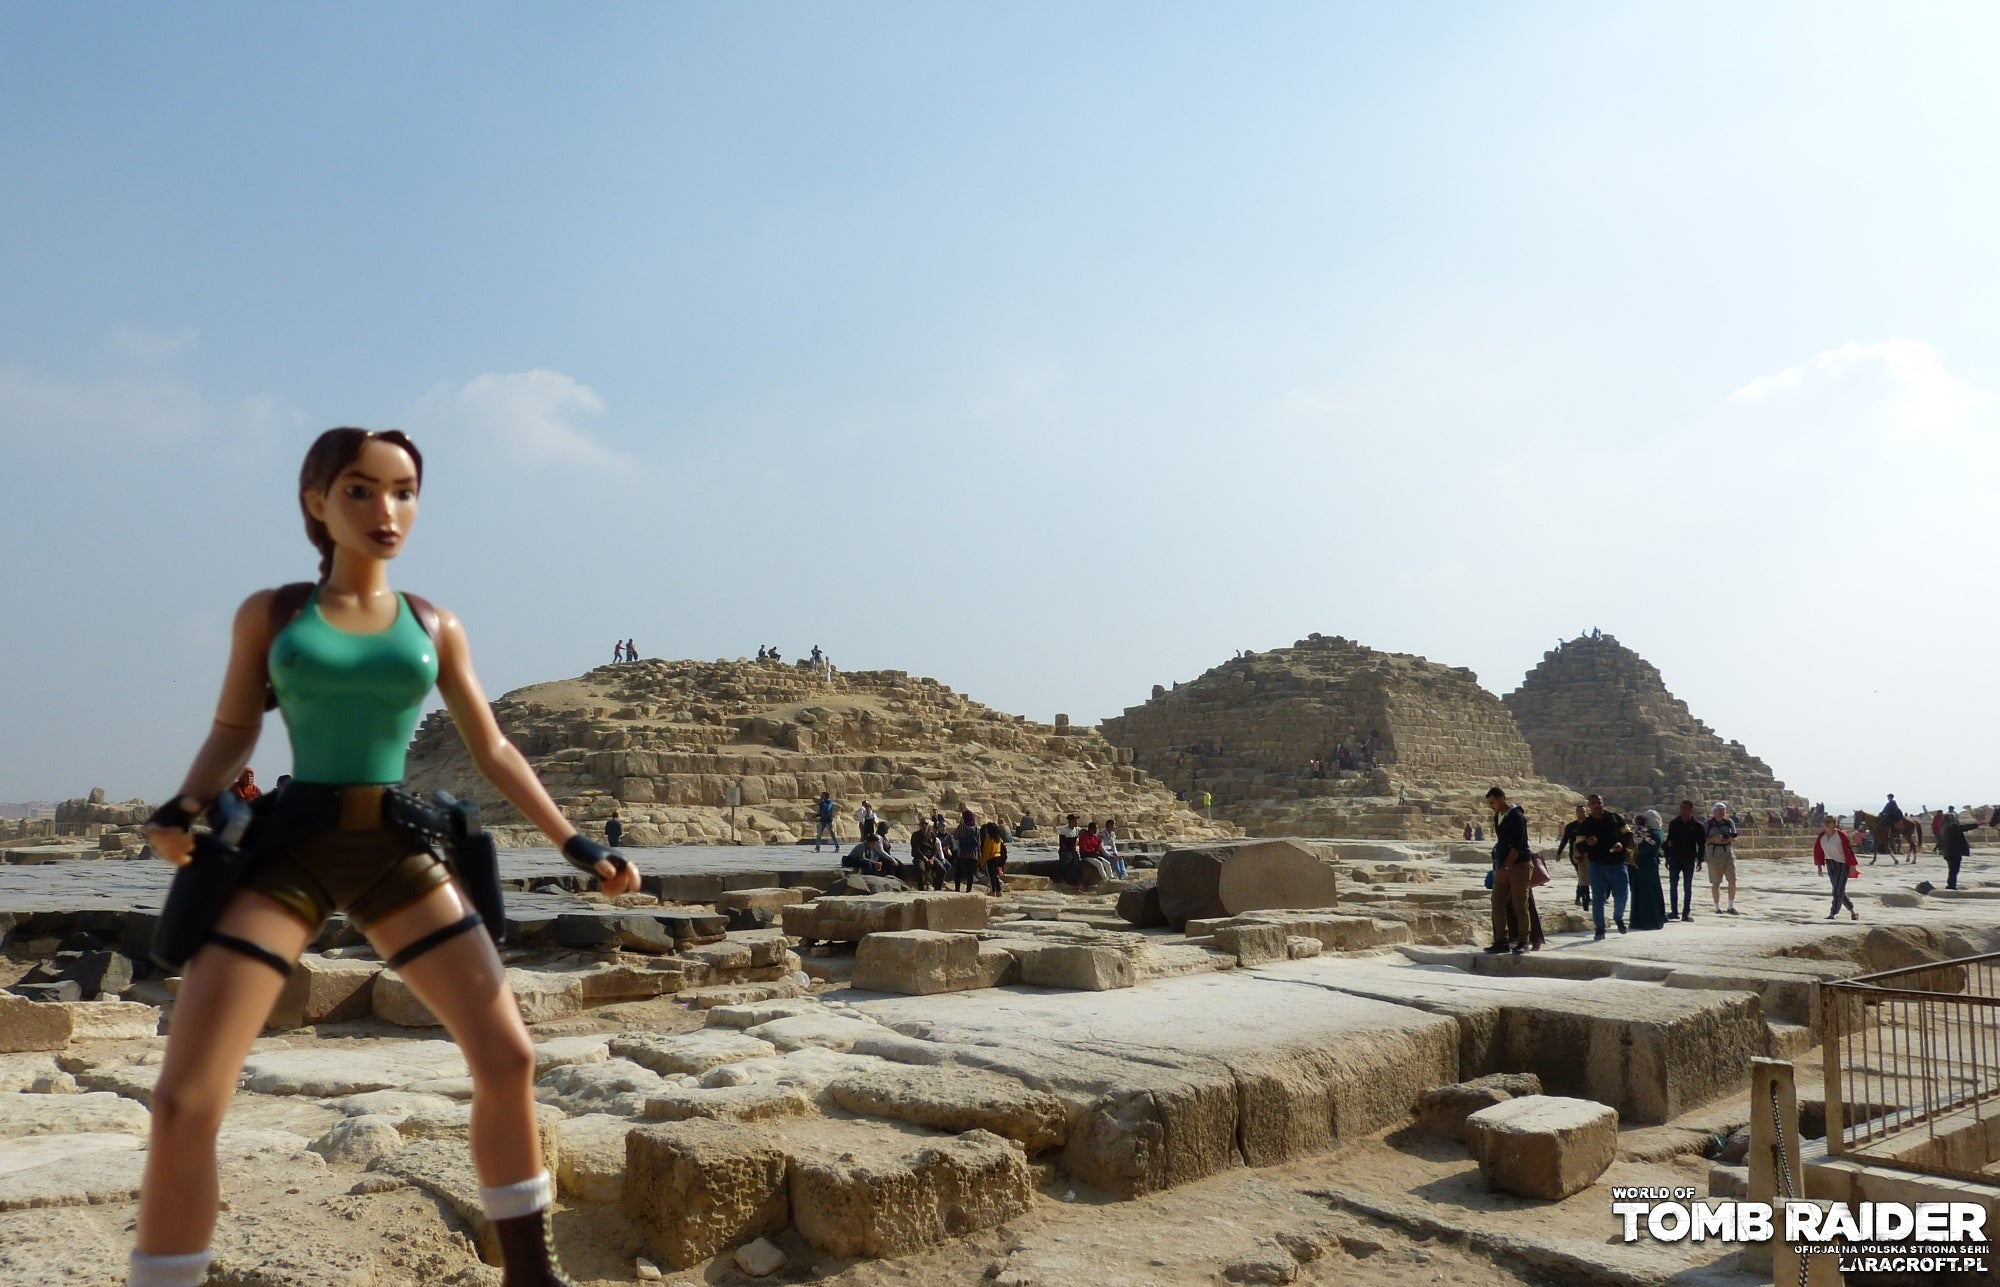 A photograph of a Lara Croft figure in front of Khufu's Queen Pyramids ruins in Egypt